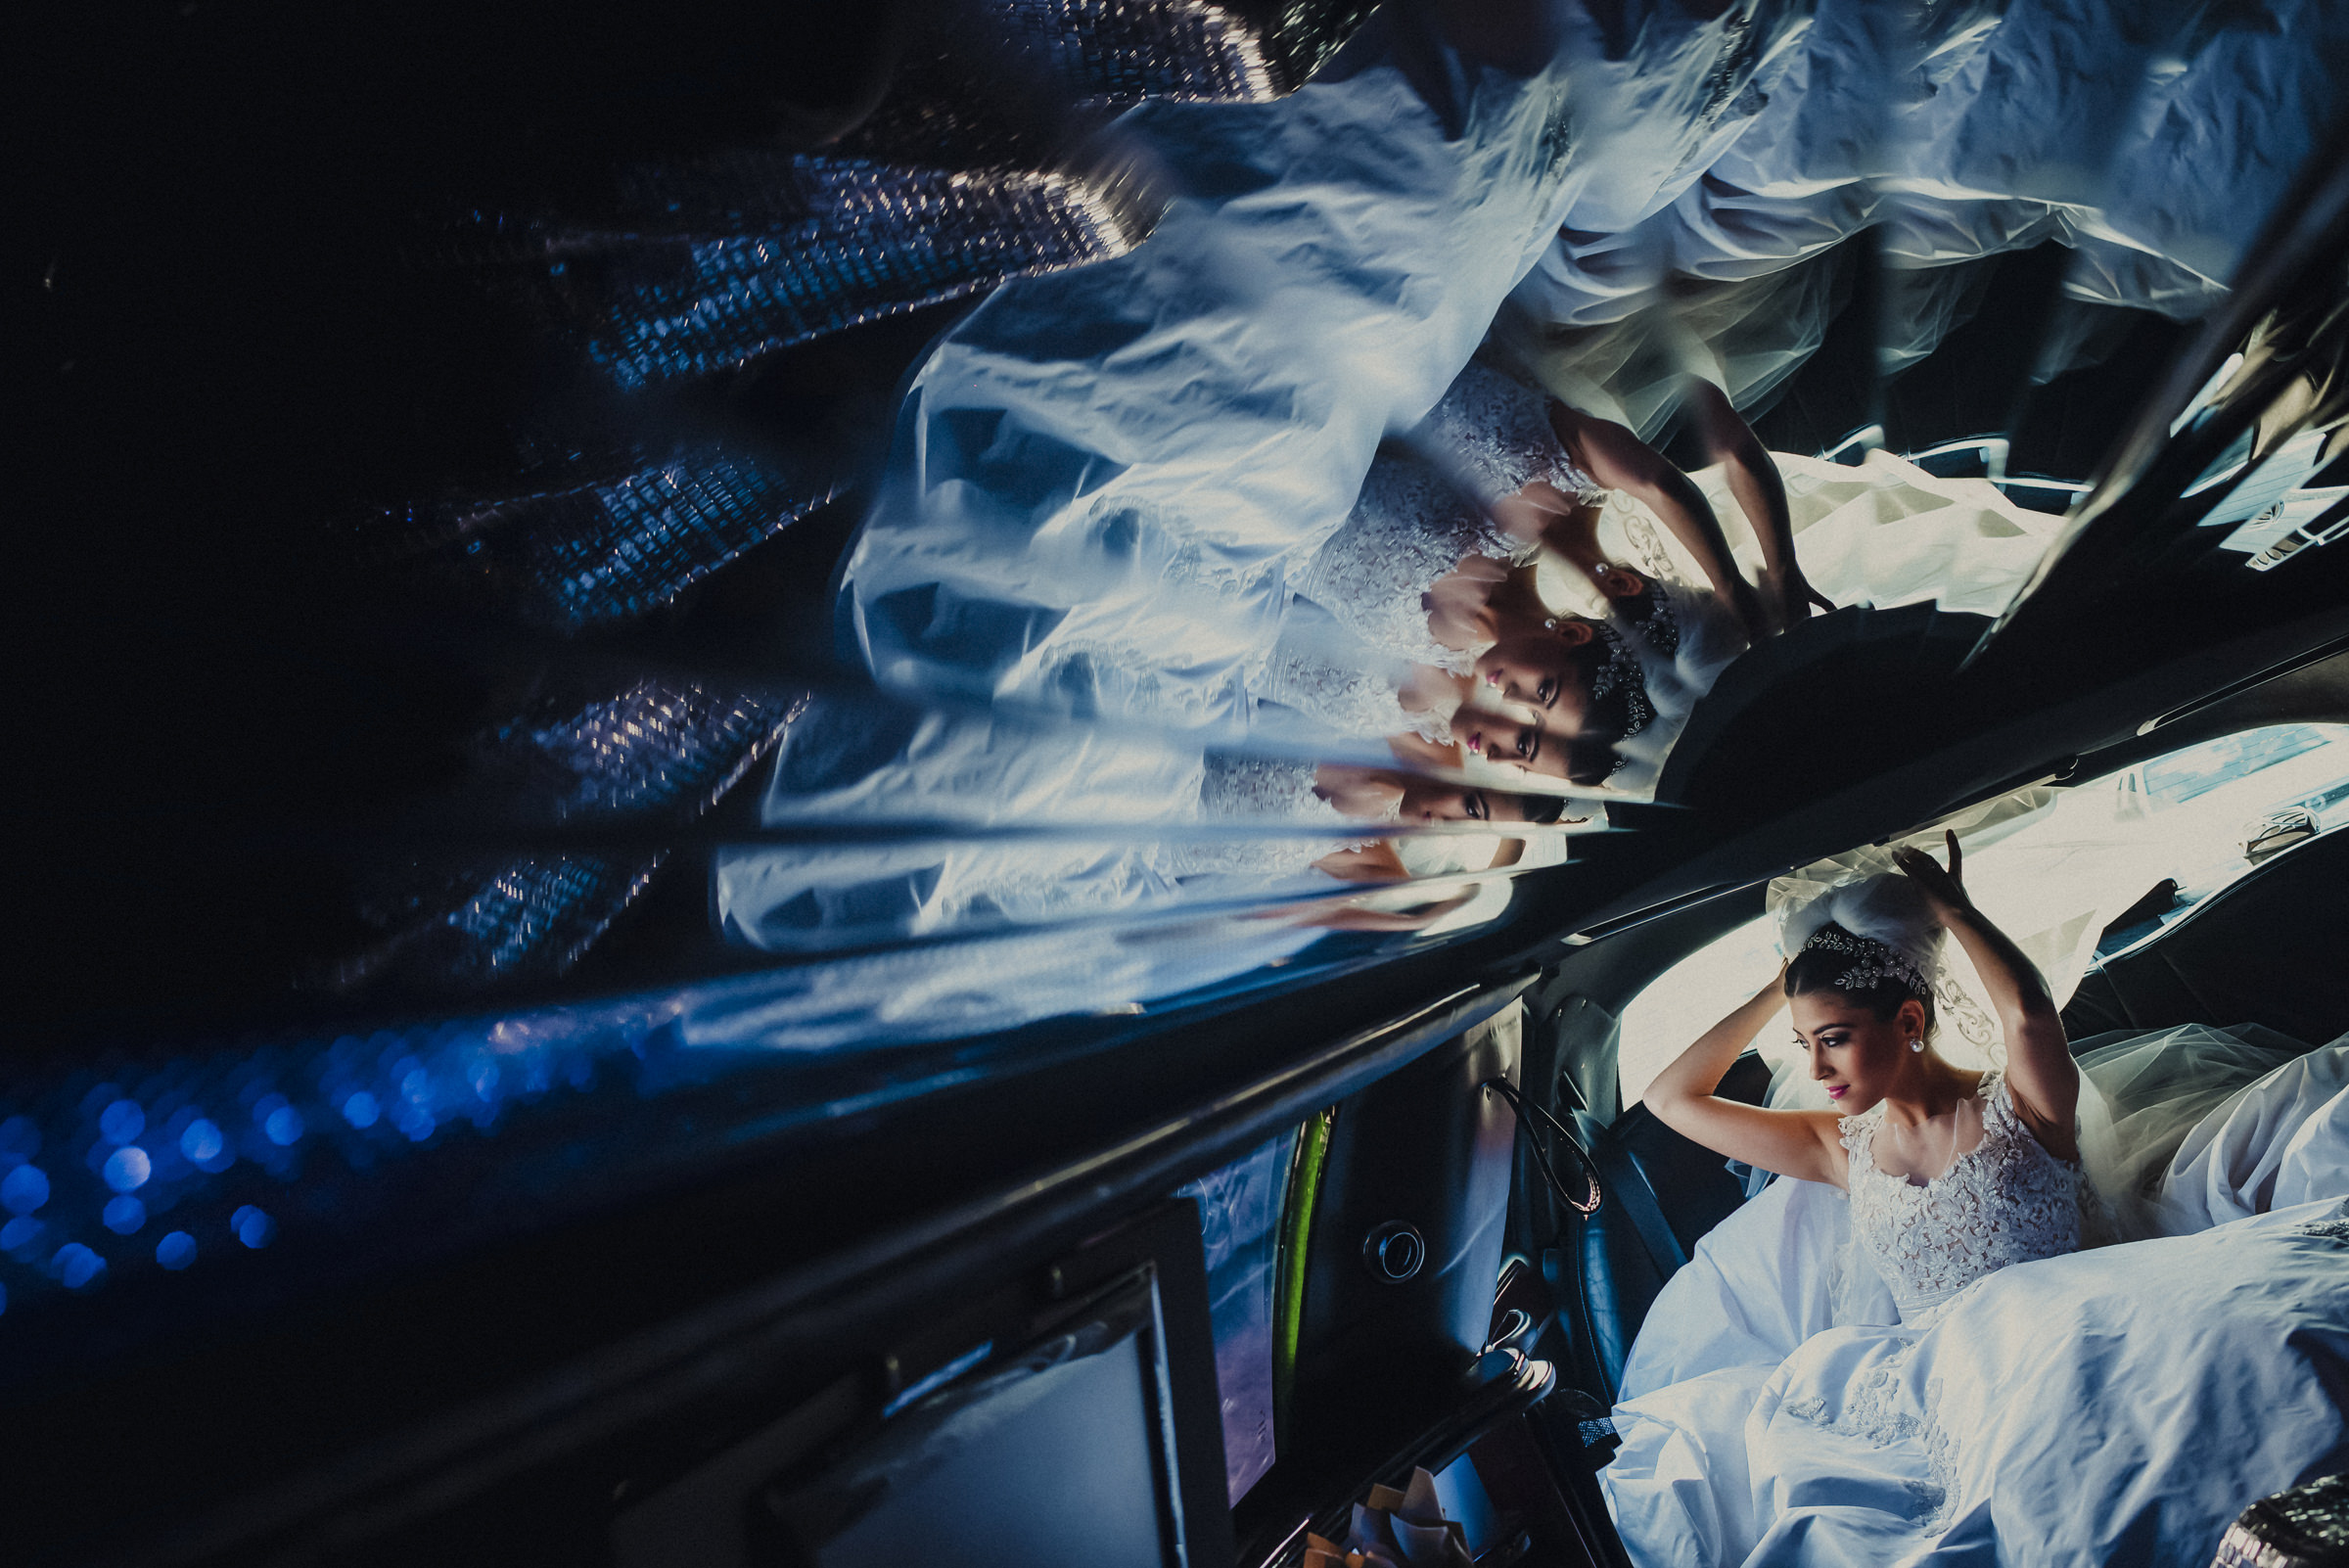 Multiple reflections of bride on limo ceiling - photo by El Marco Rojo